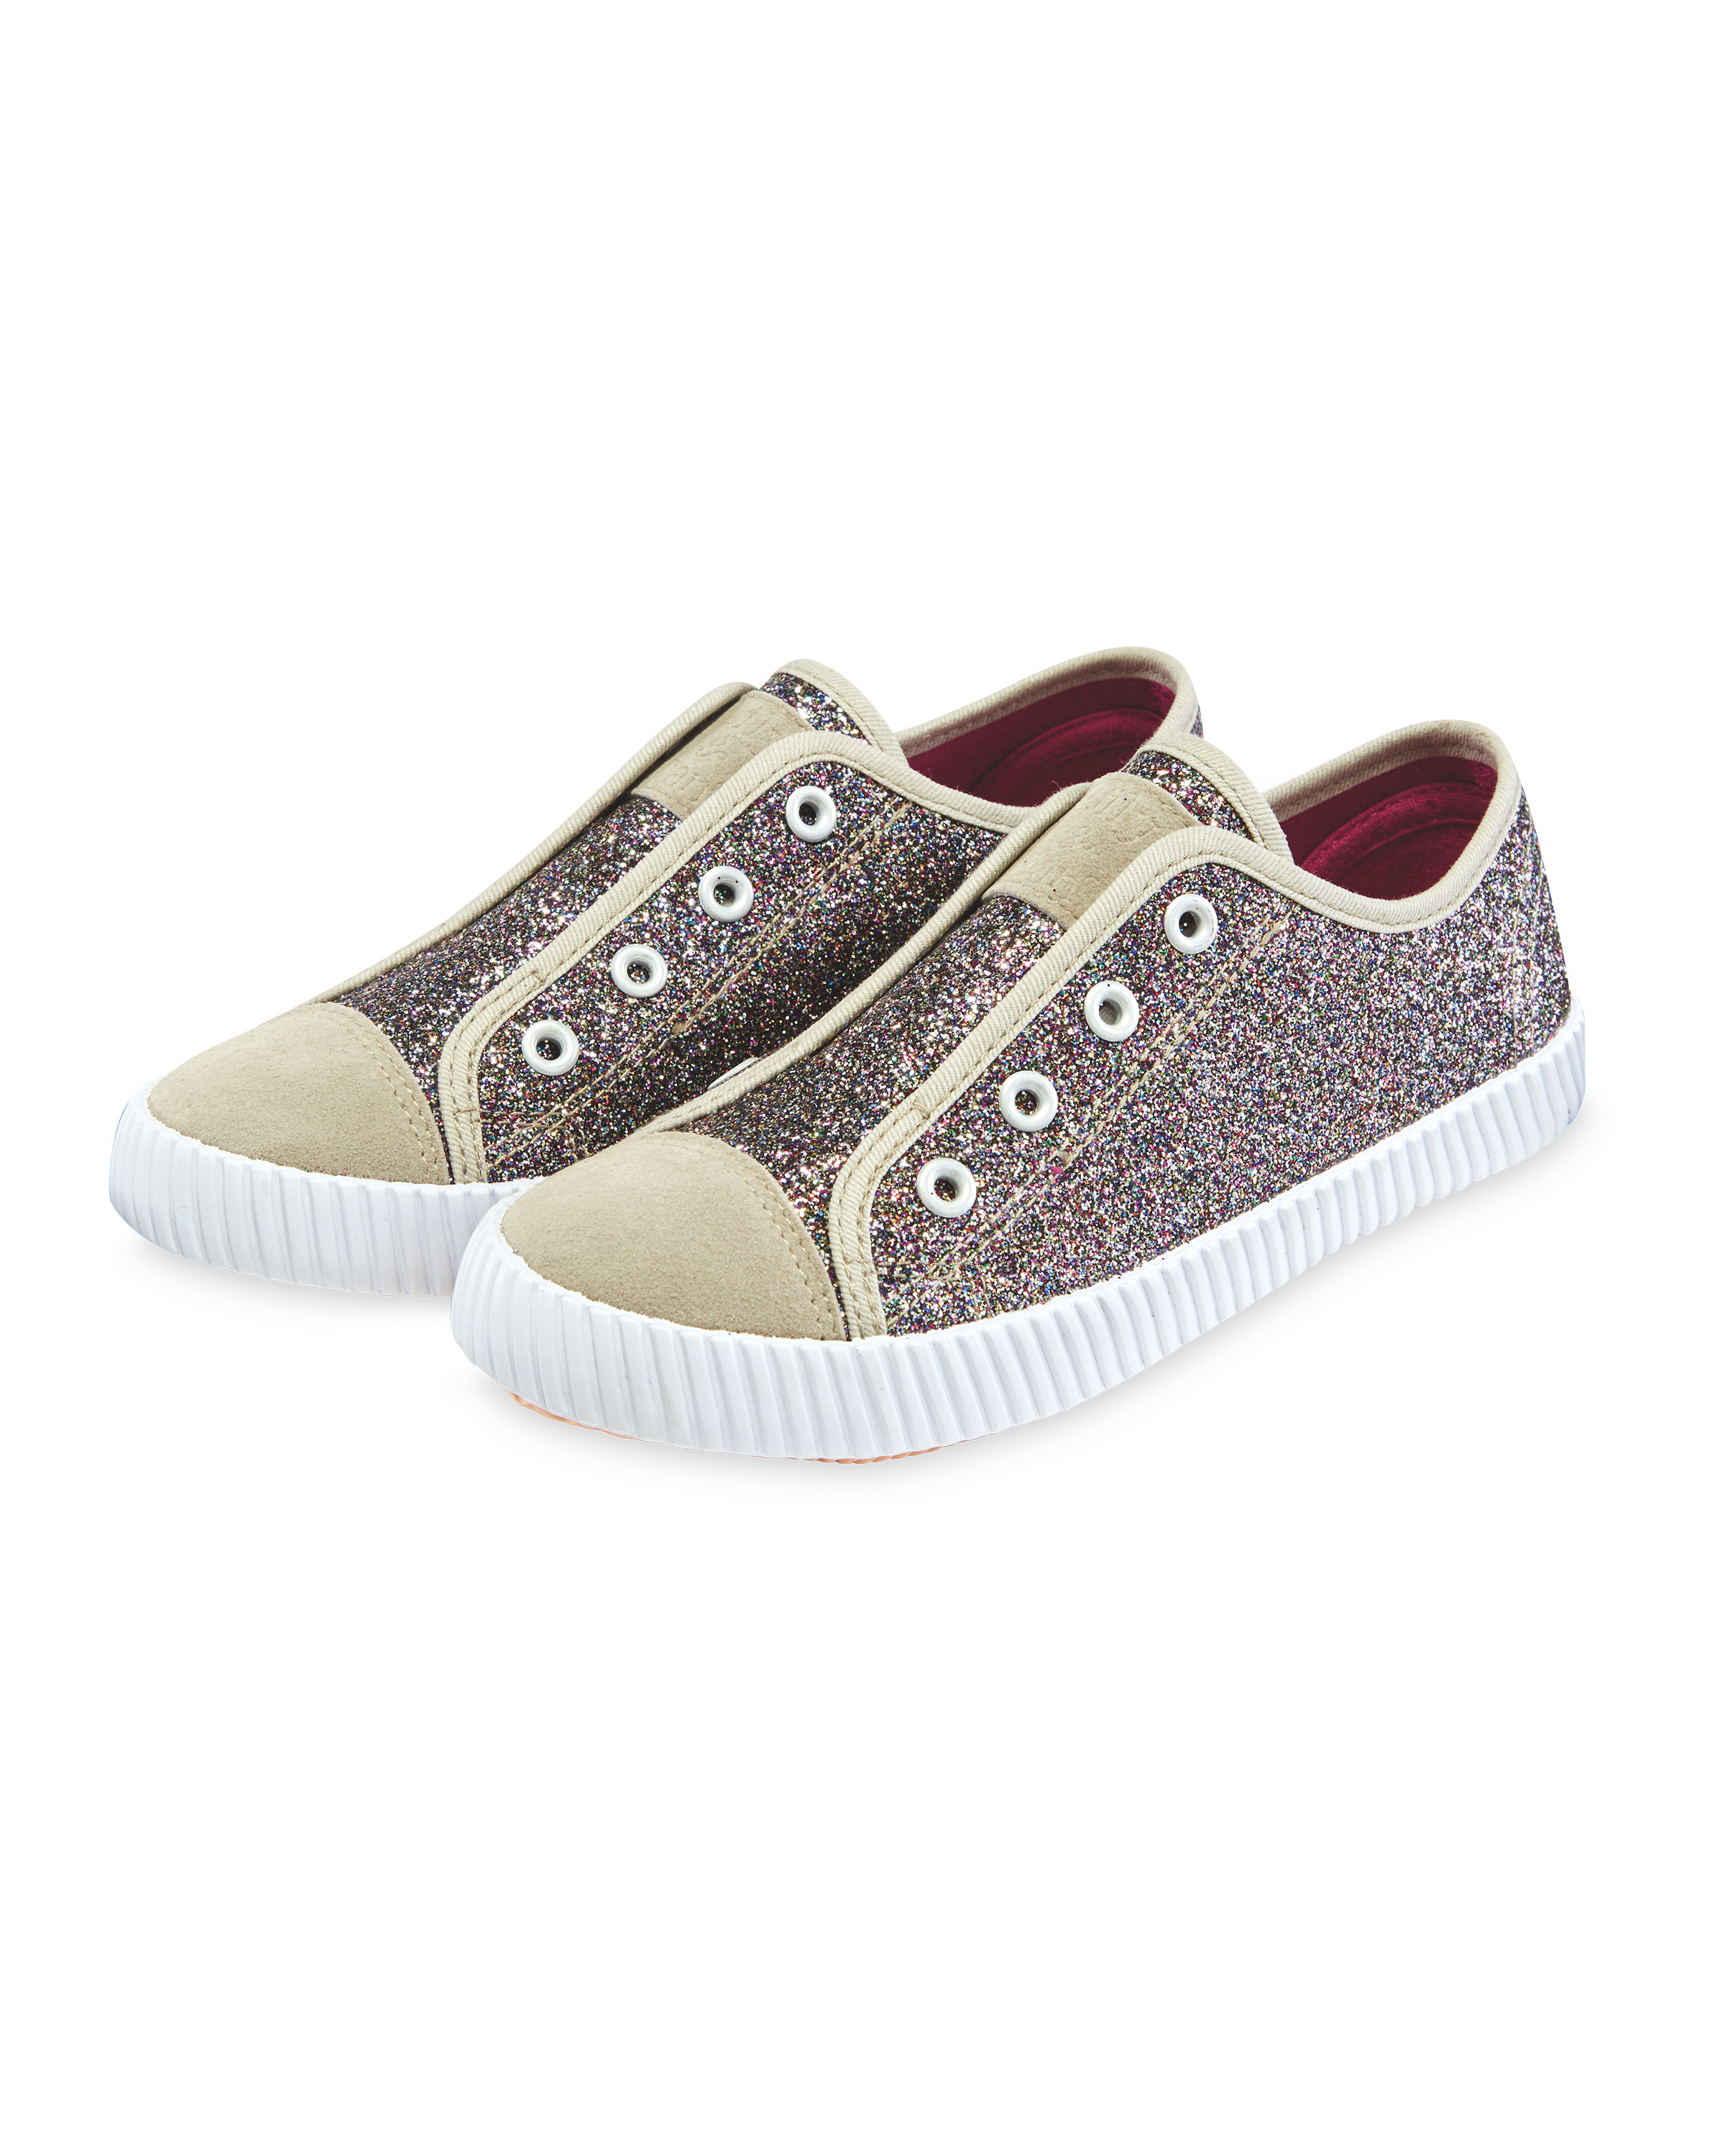 8be60c3fc1a29 Lily & Dan Glitter Pumps - ALDI UK